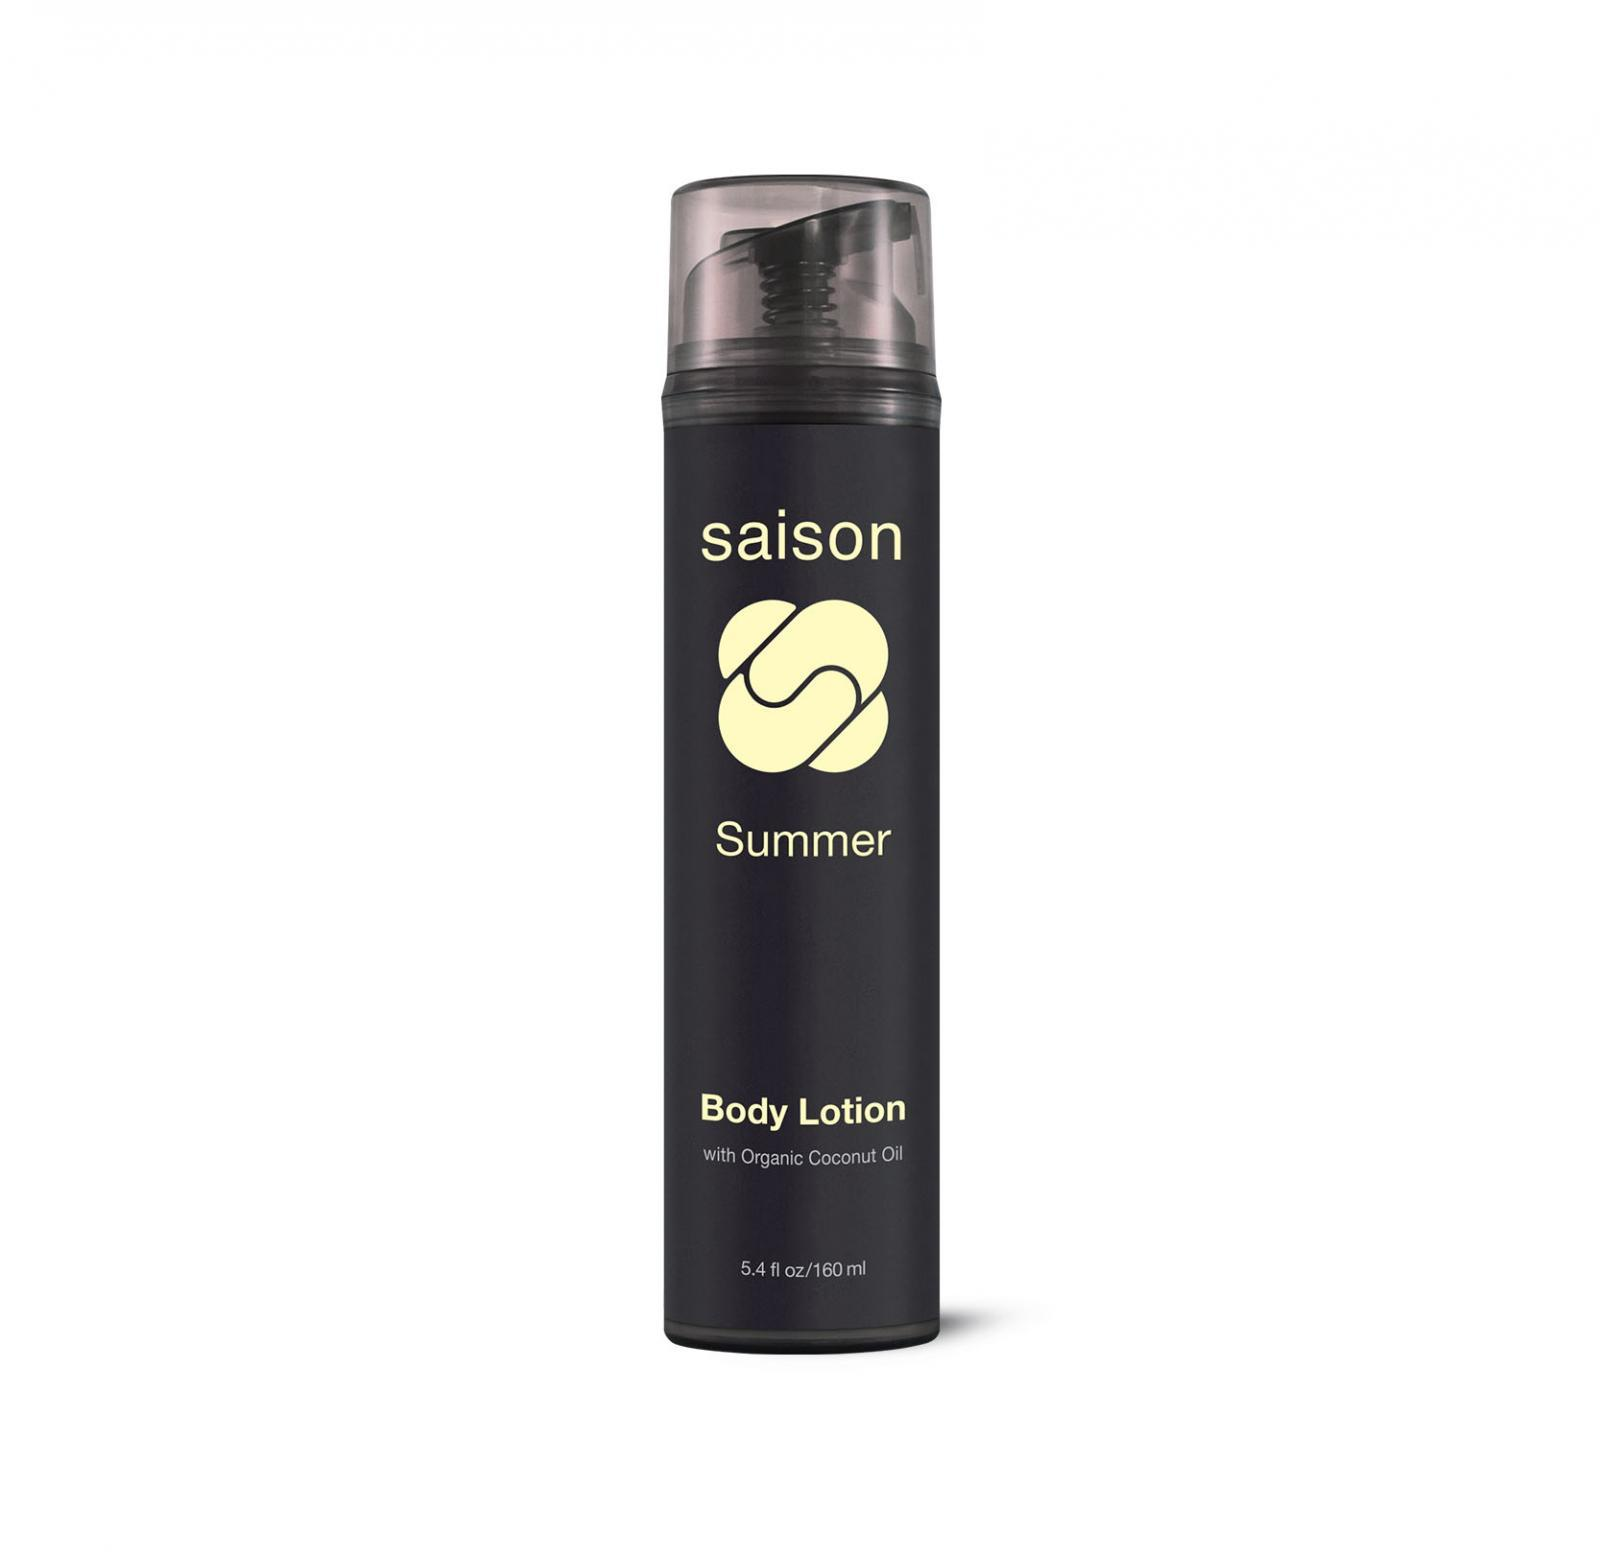 Saison Summer Body Lotion